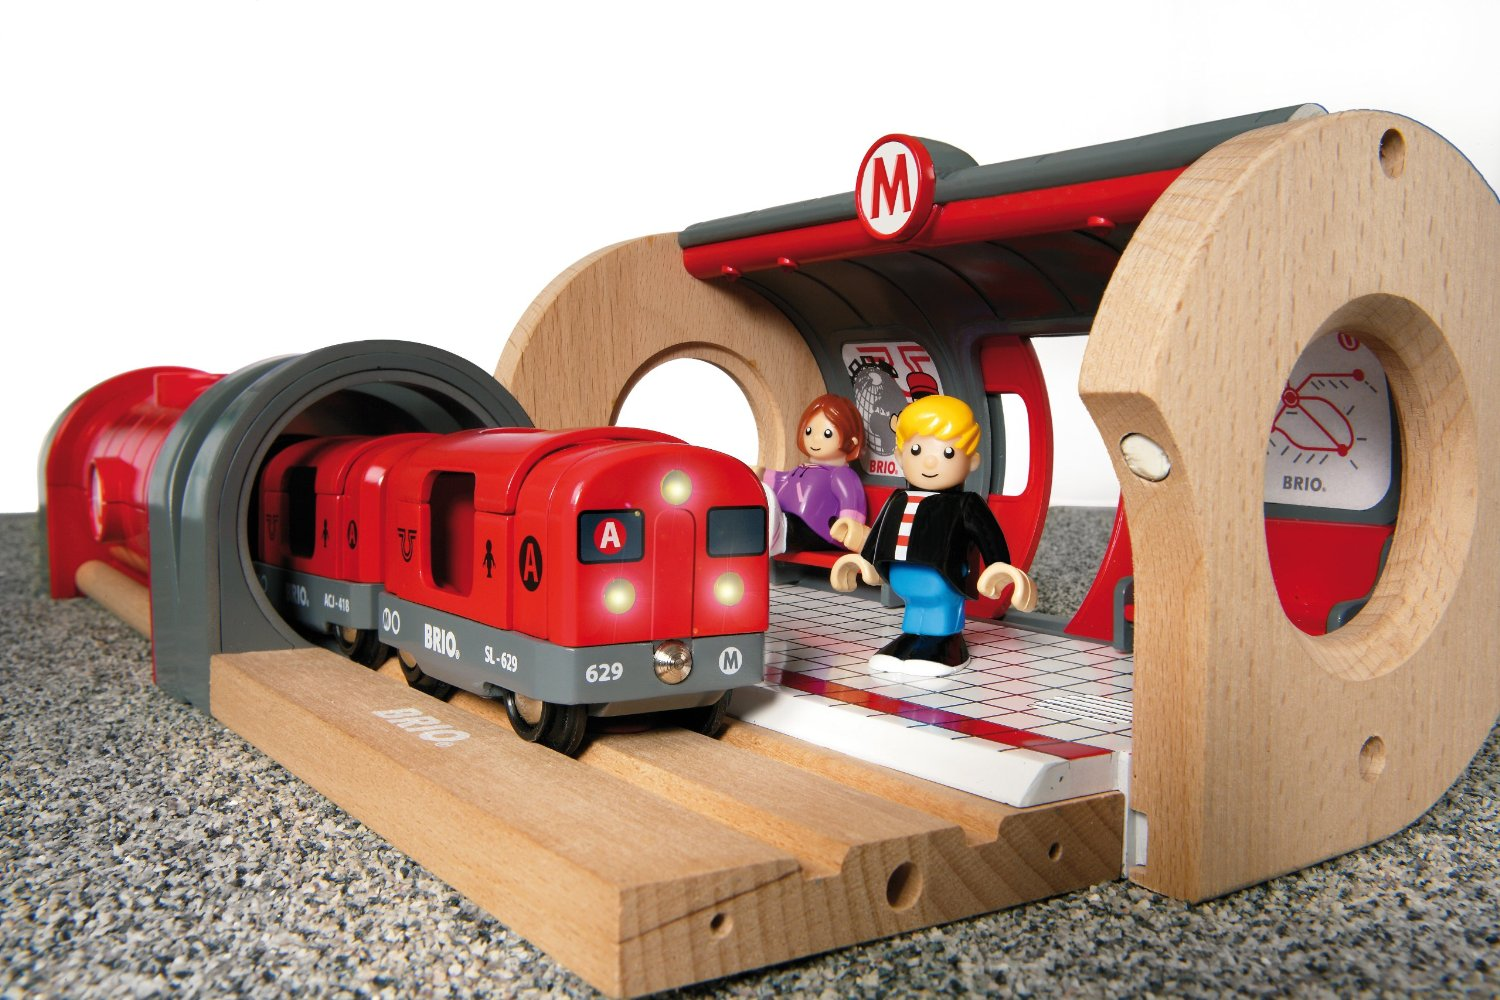 Brio Metro Railway Set - The Granville Island Toy Company